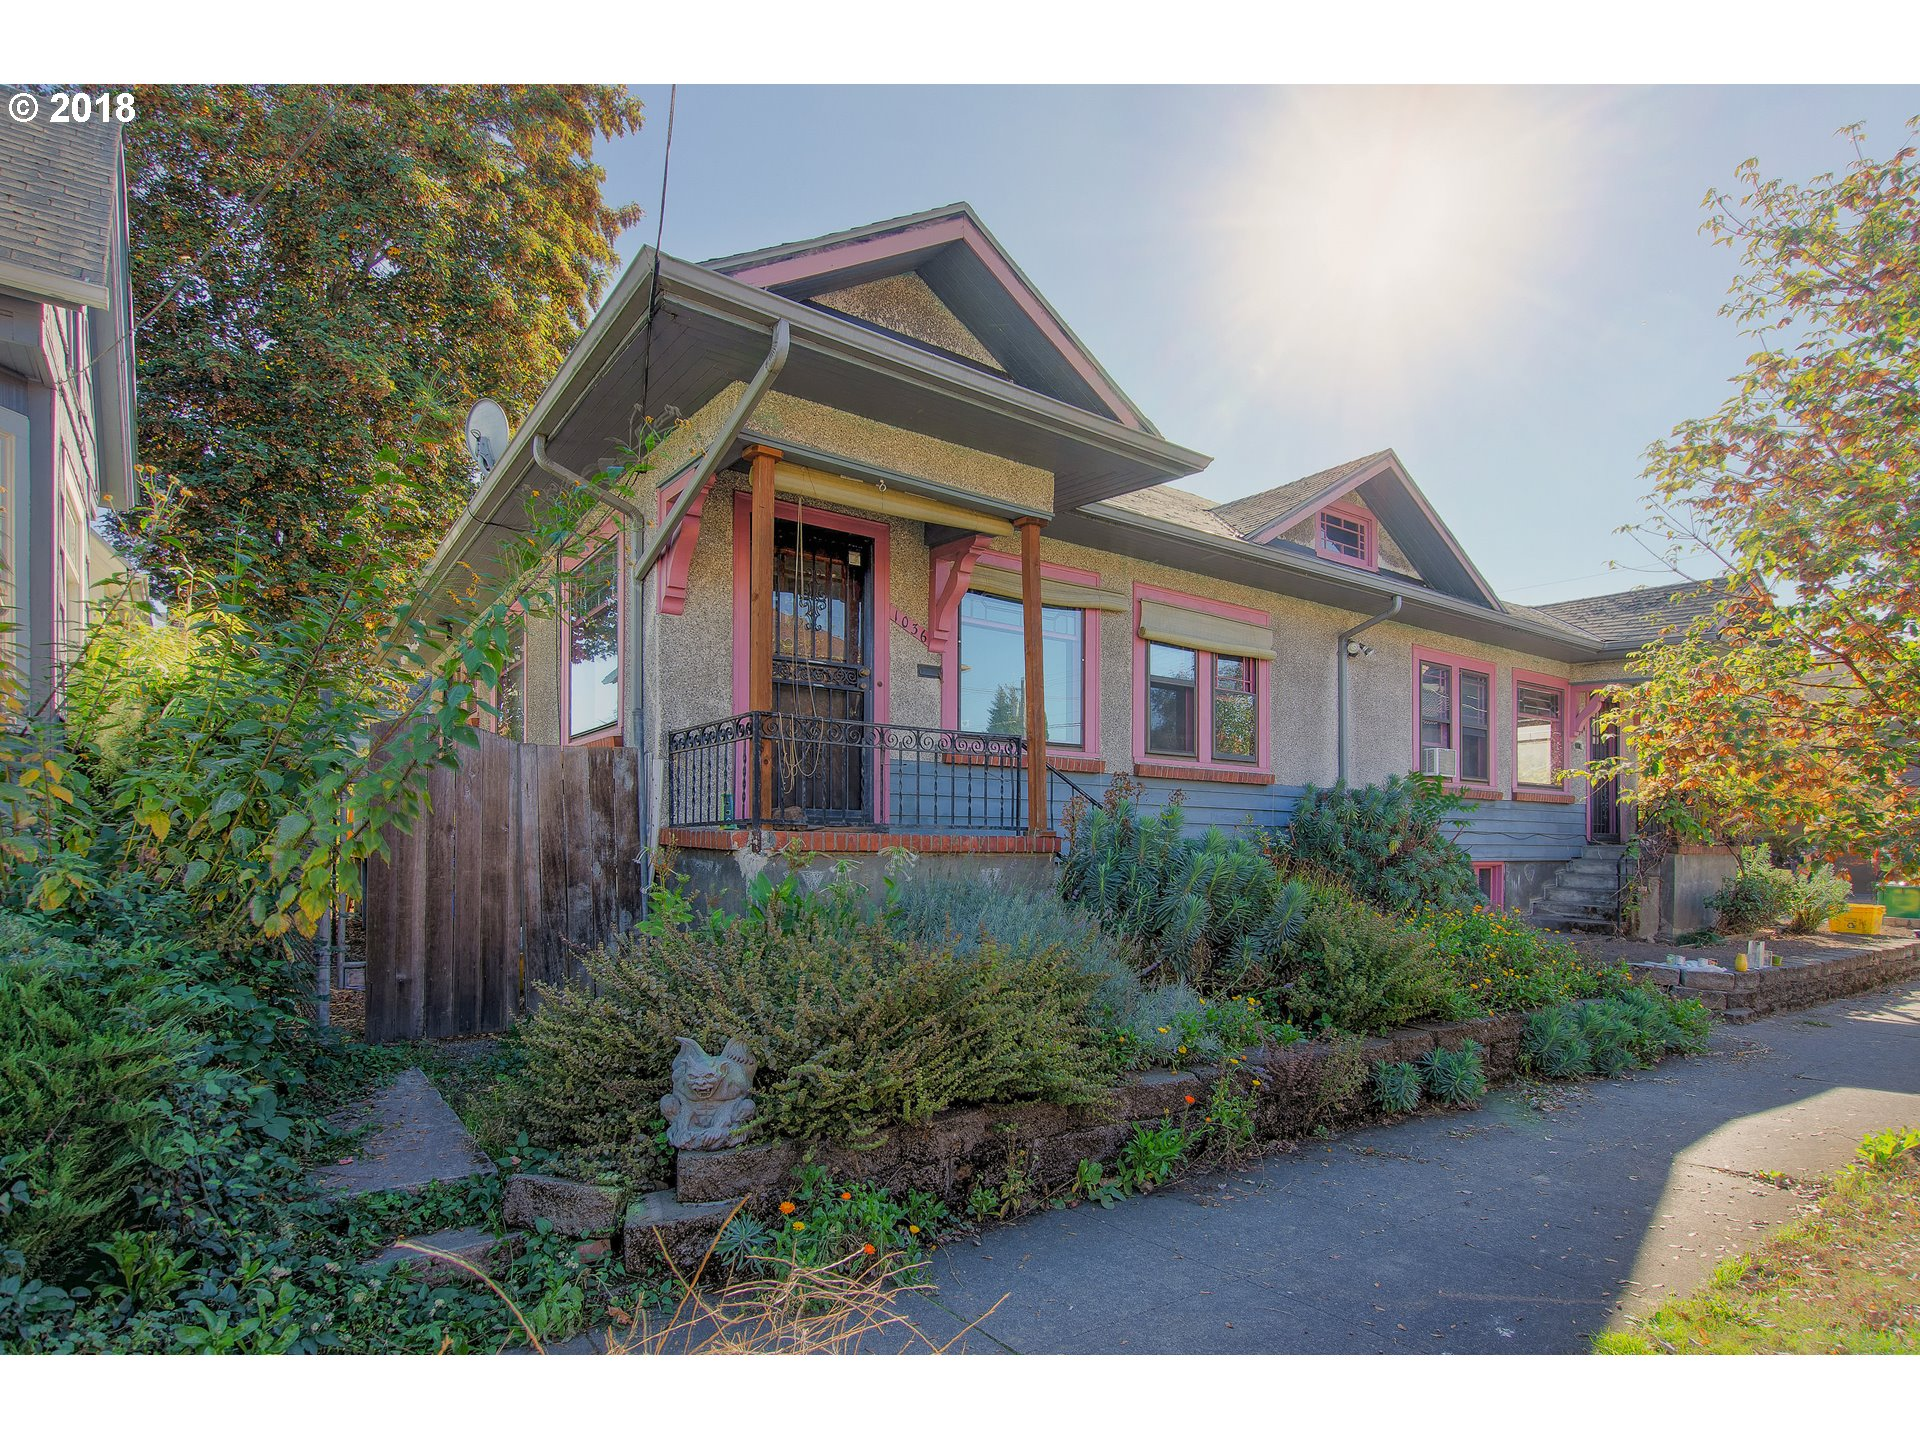 Photo for 1036 SE 42ND AVE, Portland, OR 97215 (MLS # 18412596)